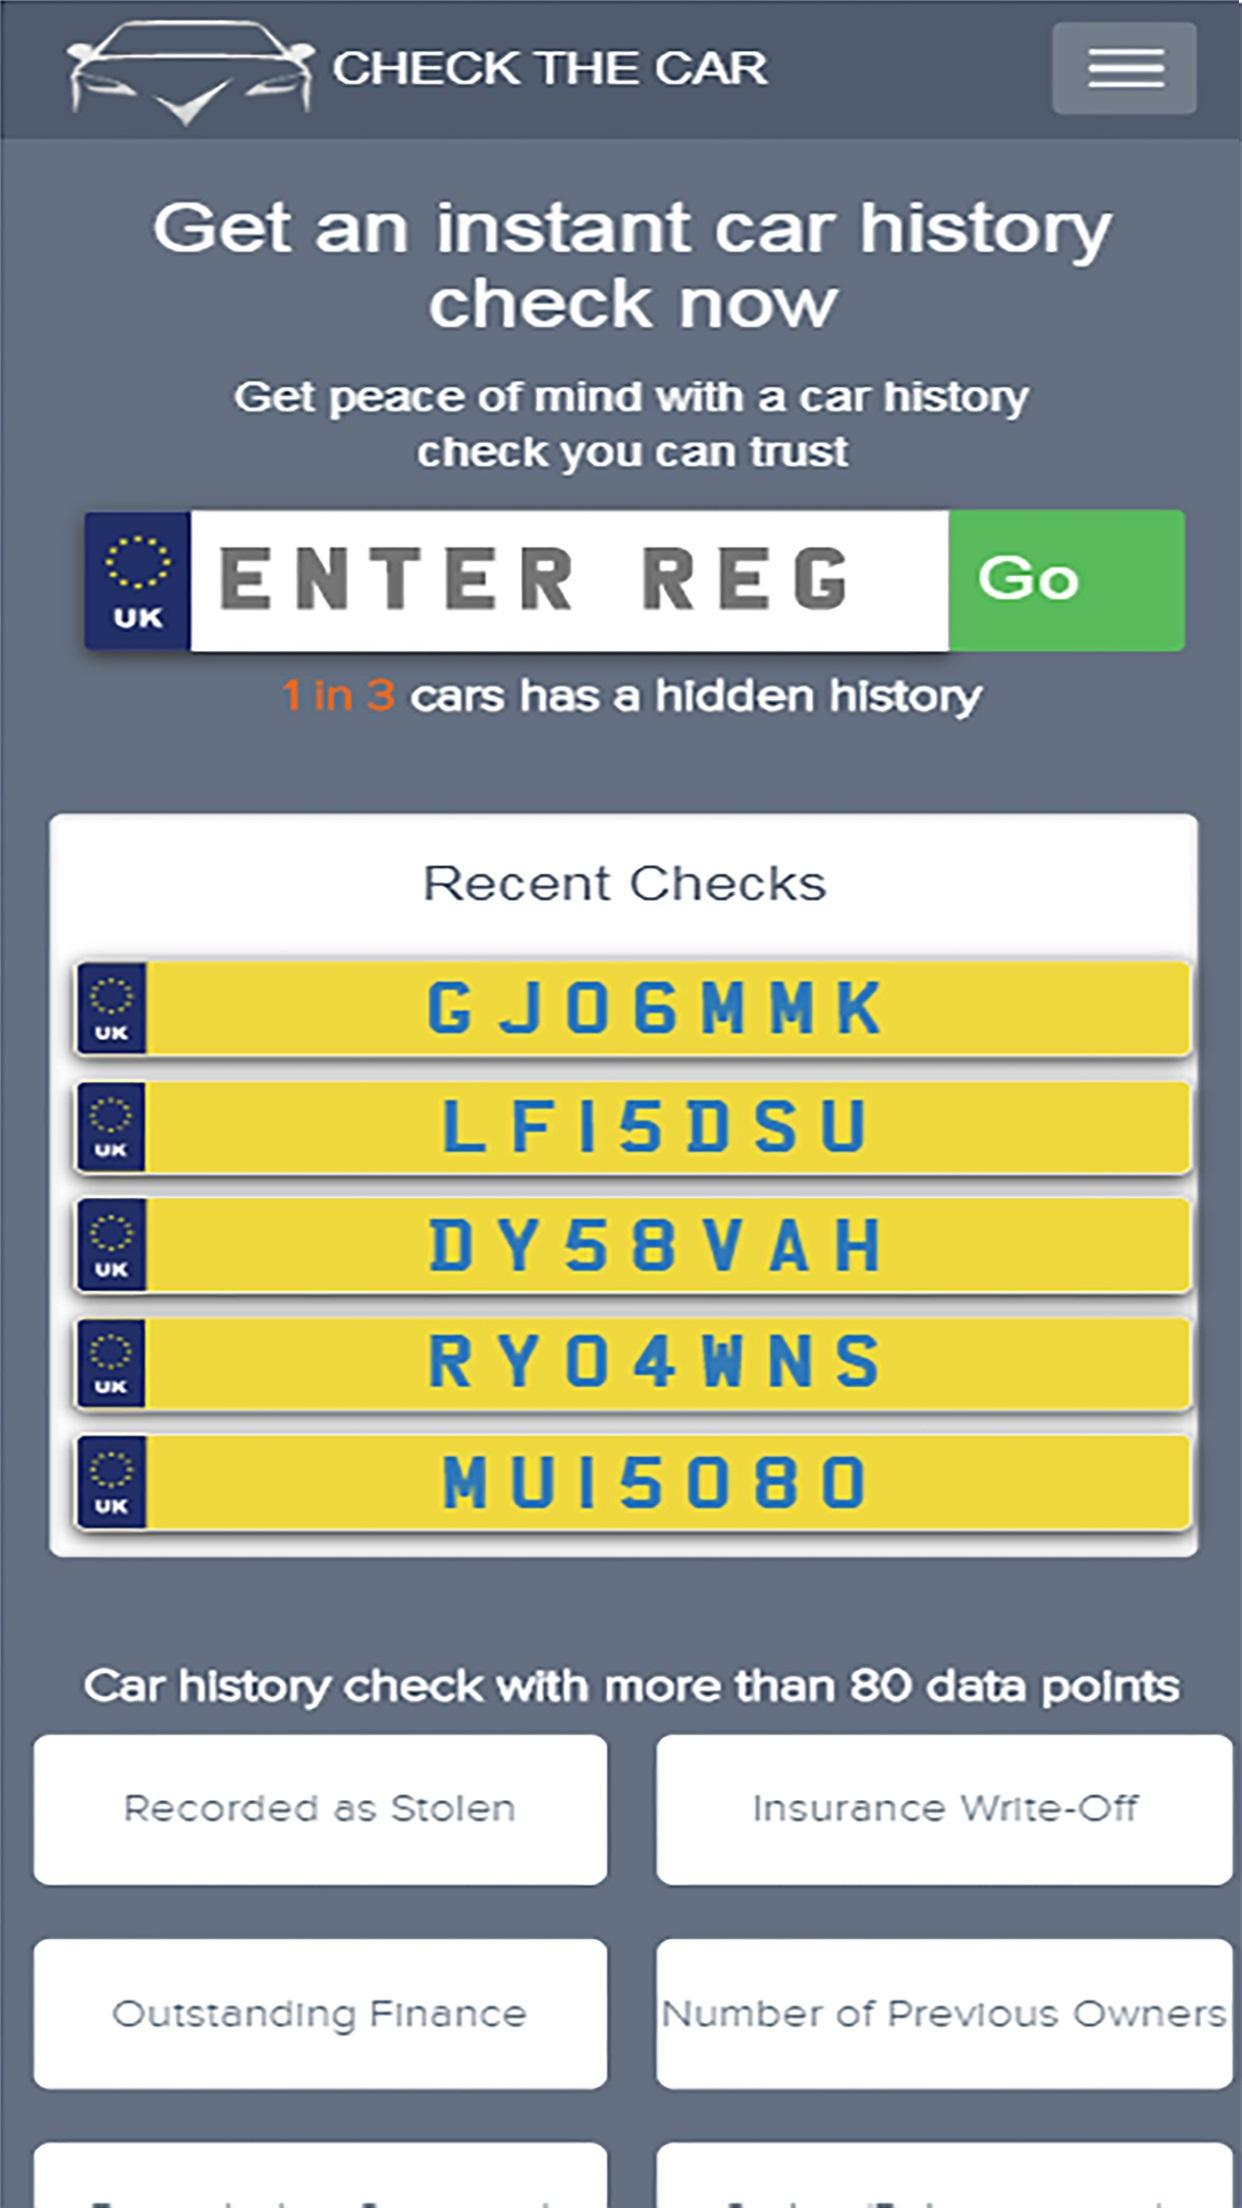 Free Car Check UK - Check The Car for Android - APK Download